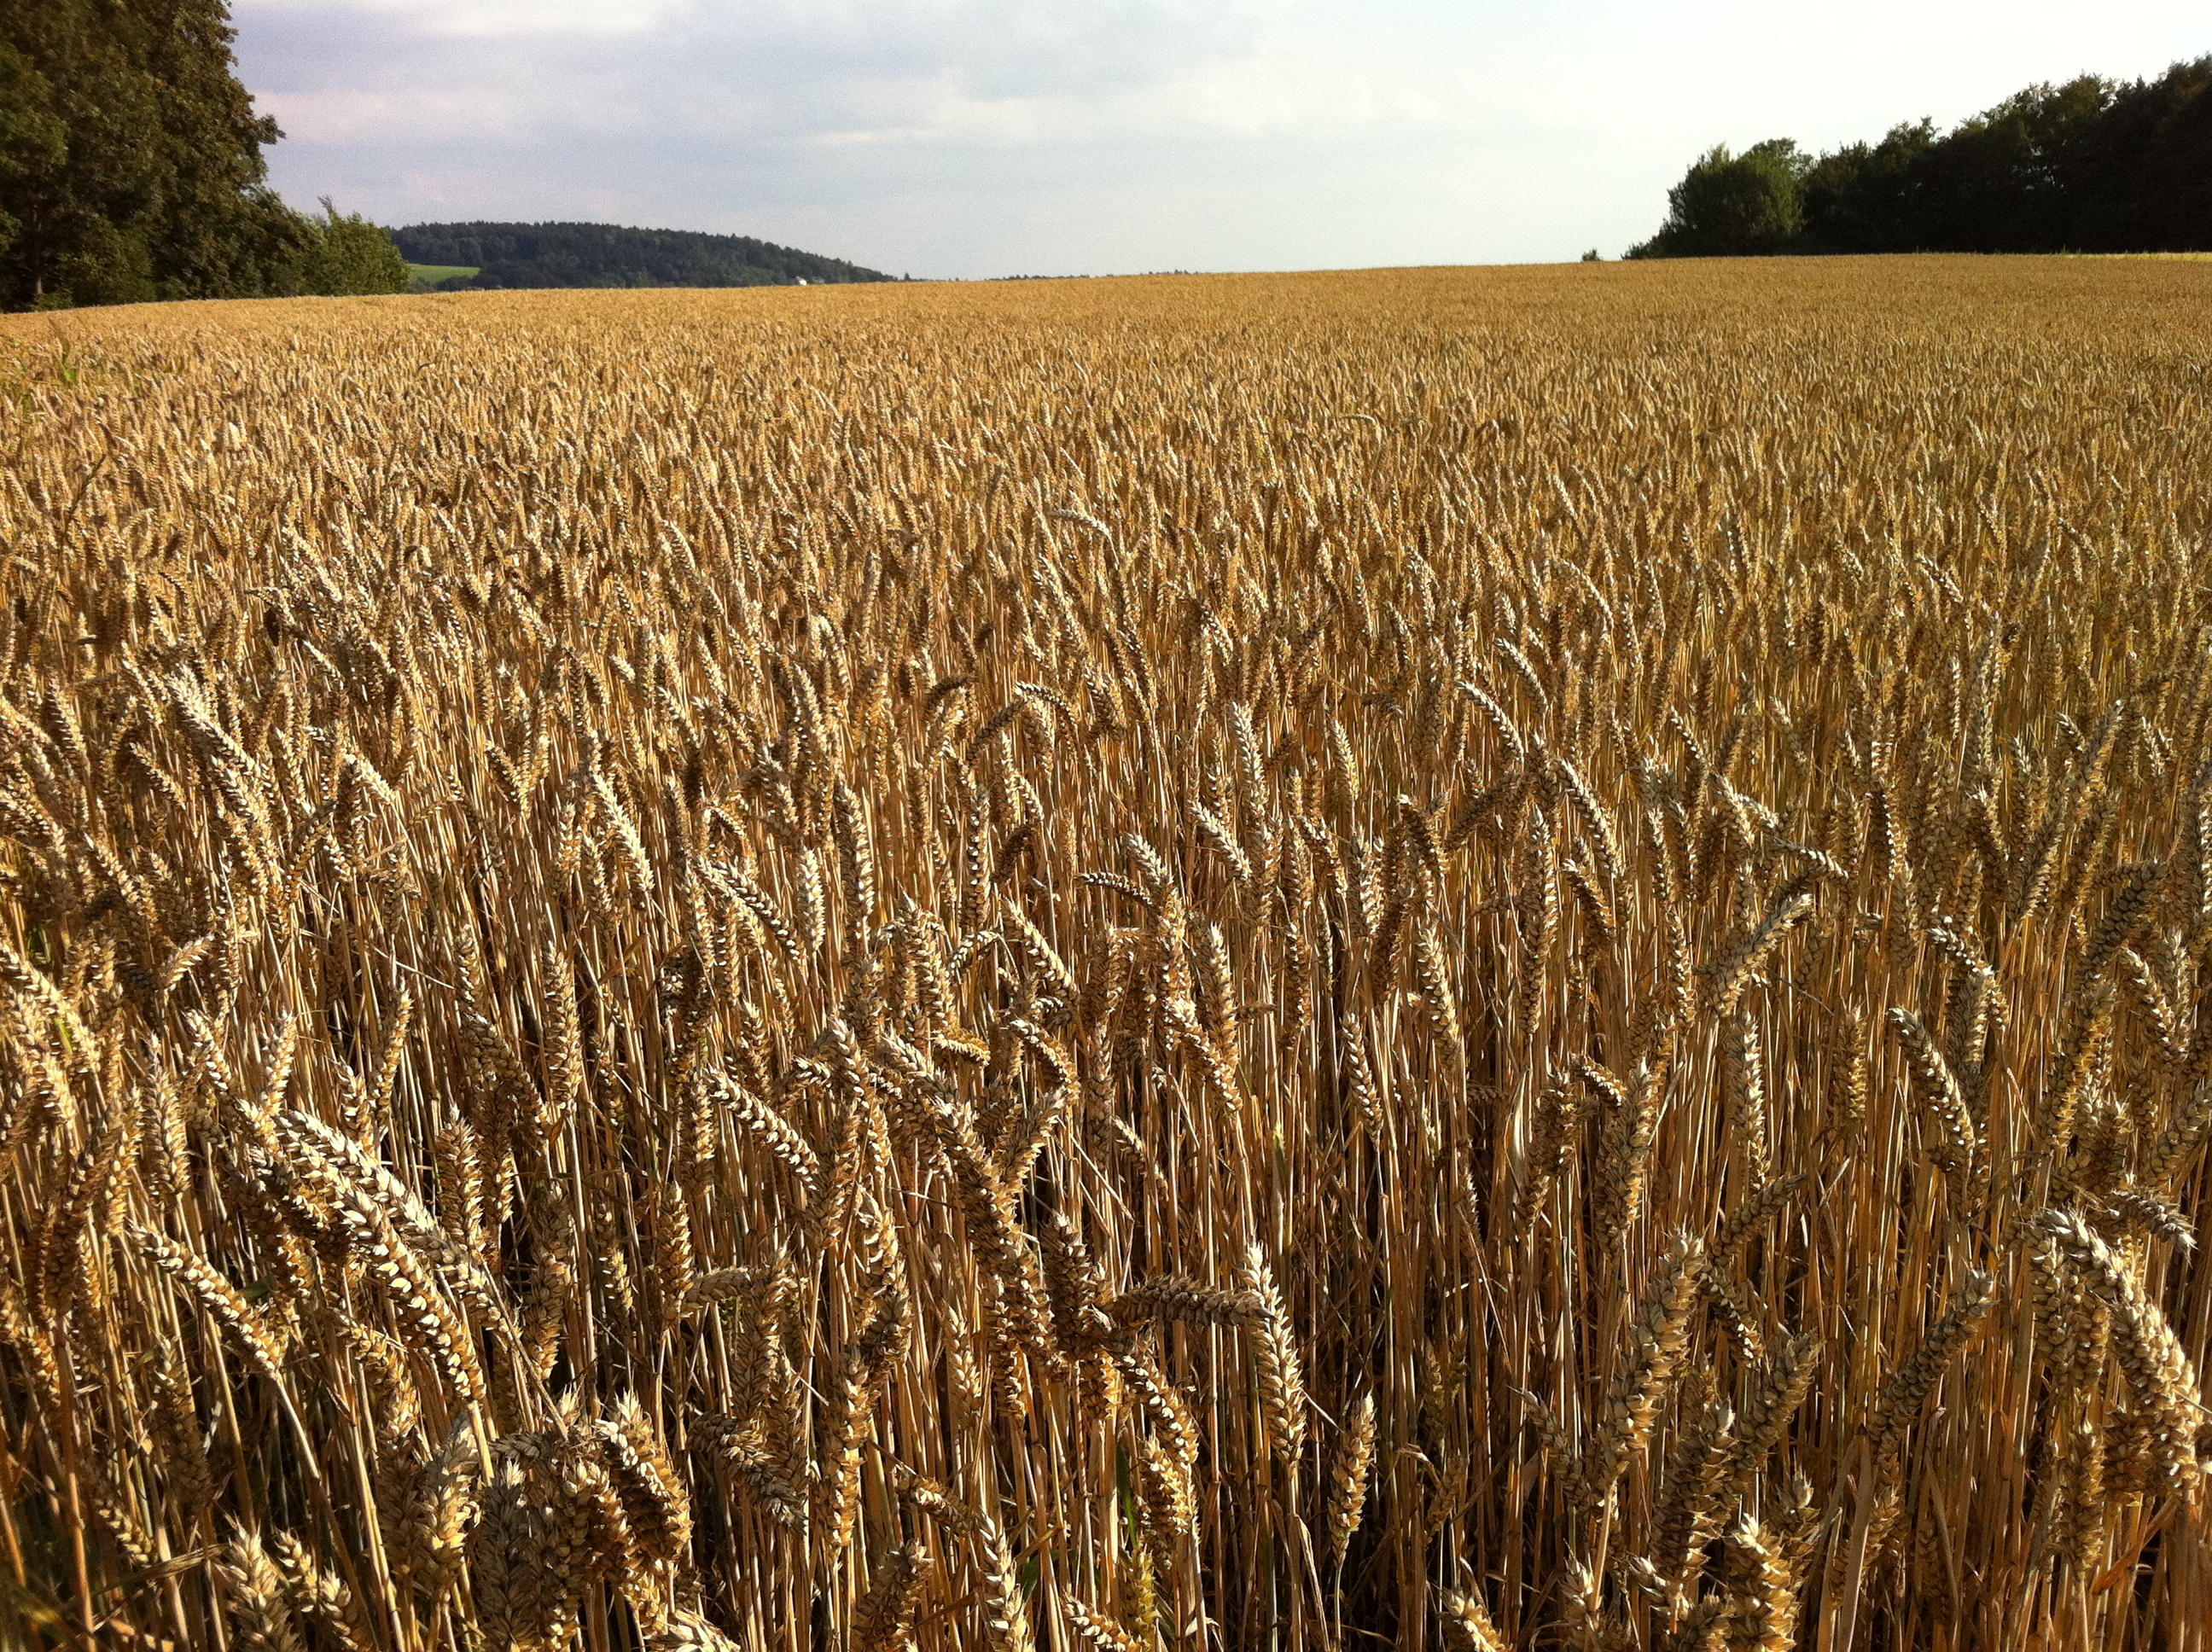 Droughts will affect 60 per cent of wheat-producing areas by 2100: Study